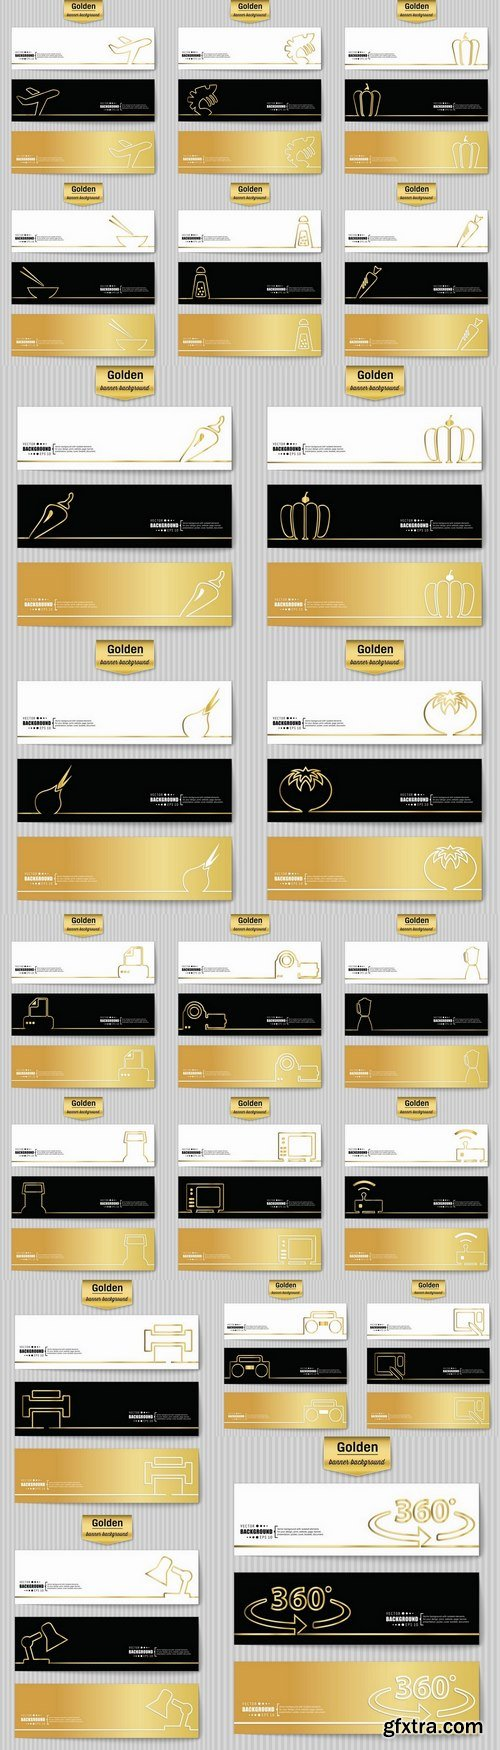 Banner pattern wallpaper background is a business card flyer gold geometric figure 21 EPS